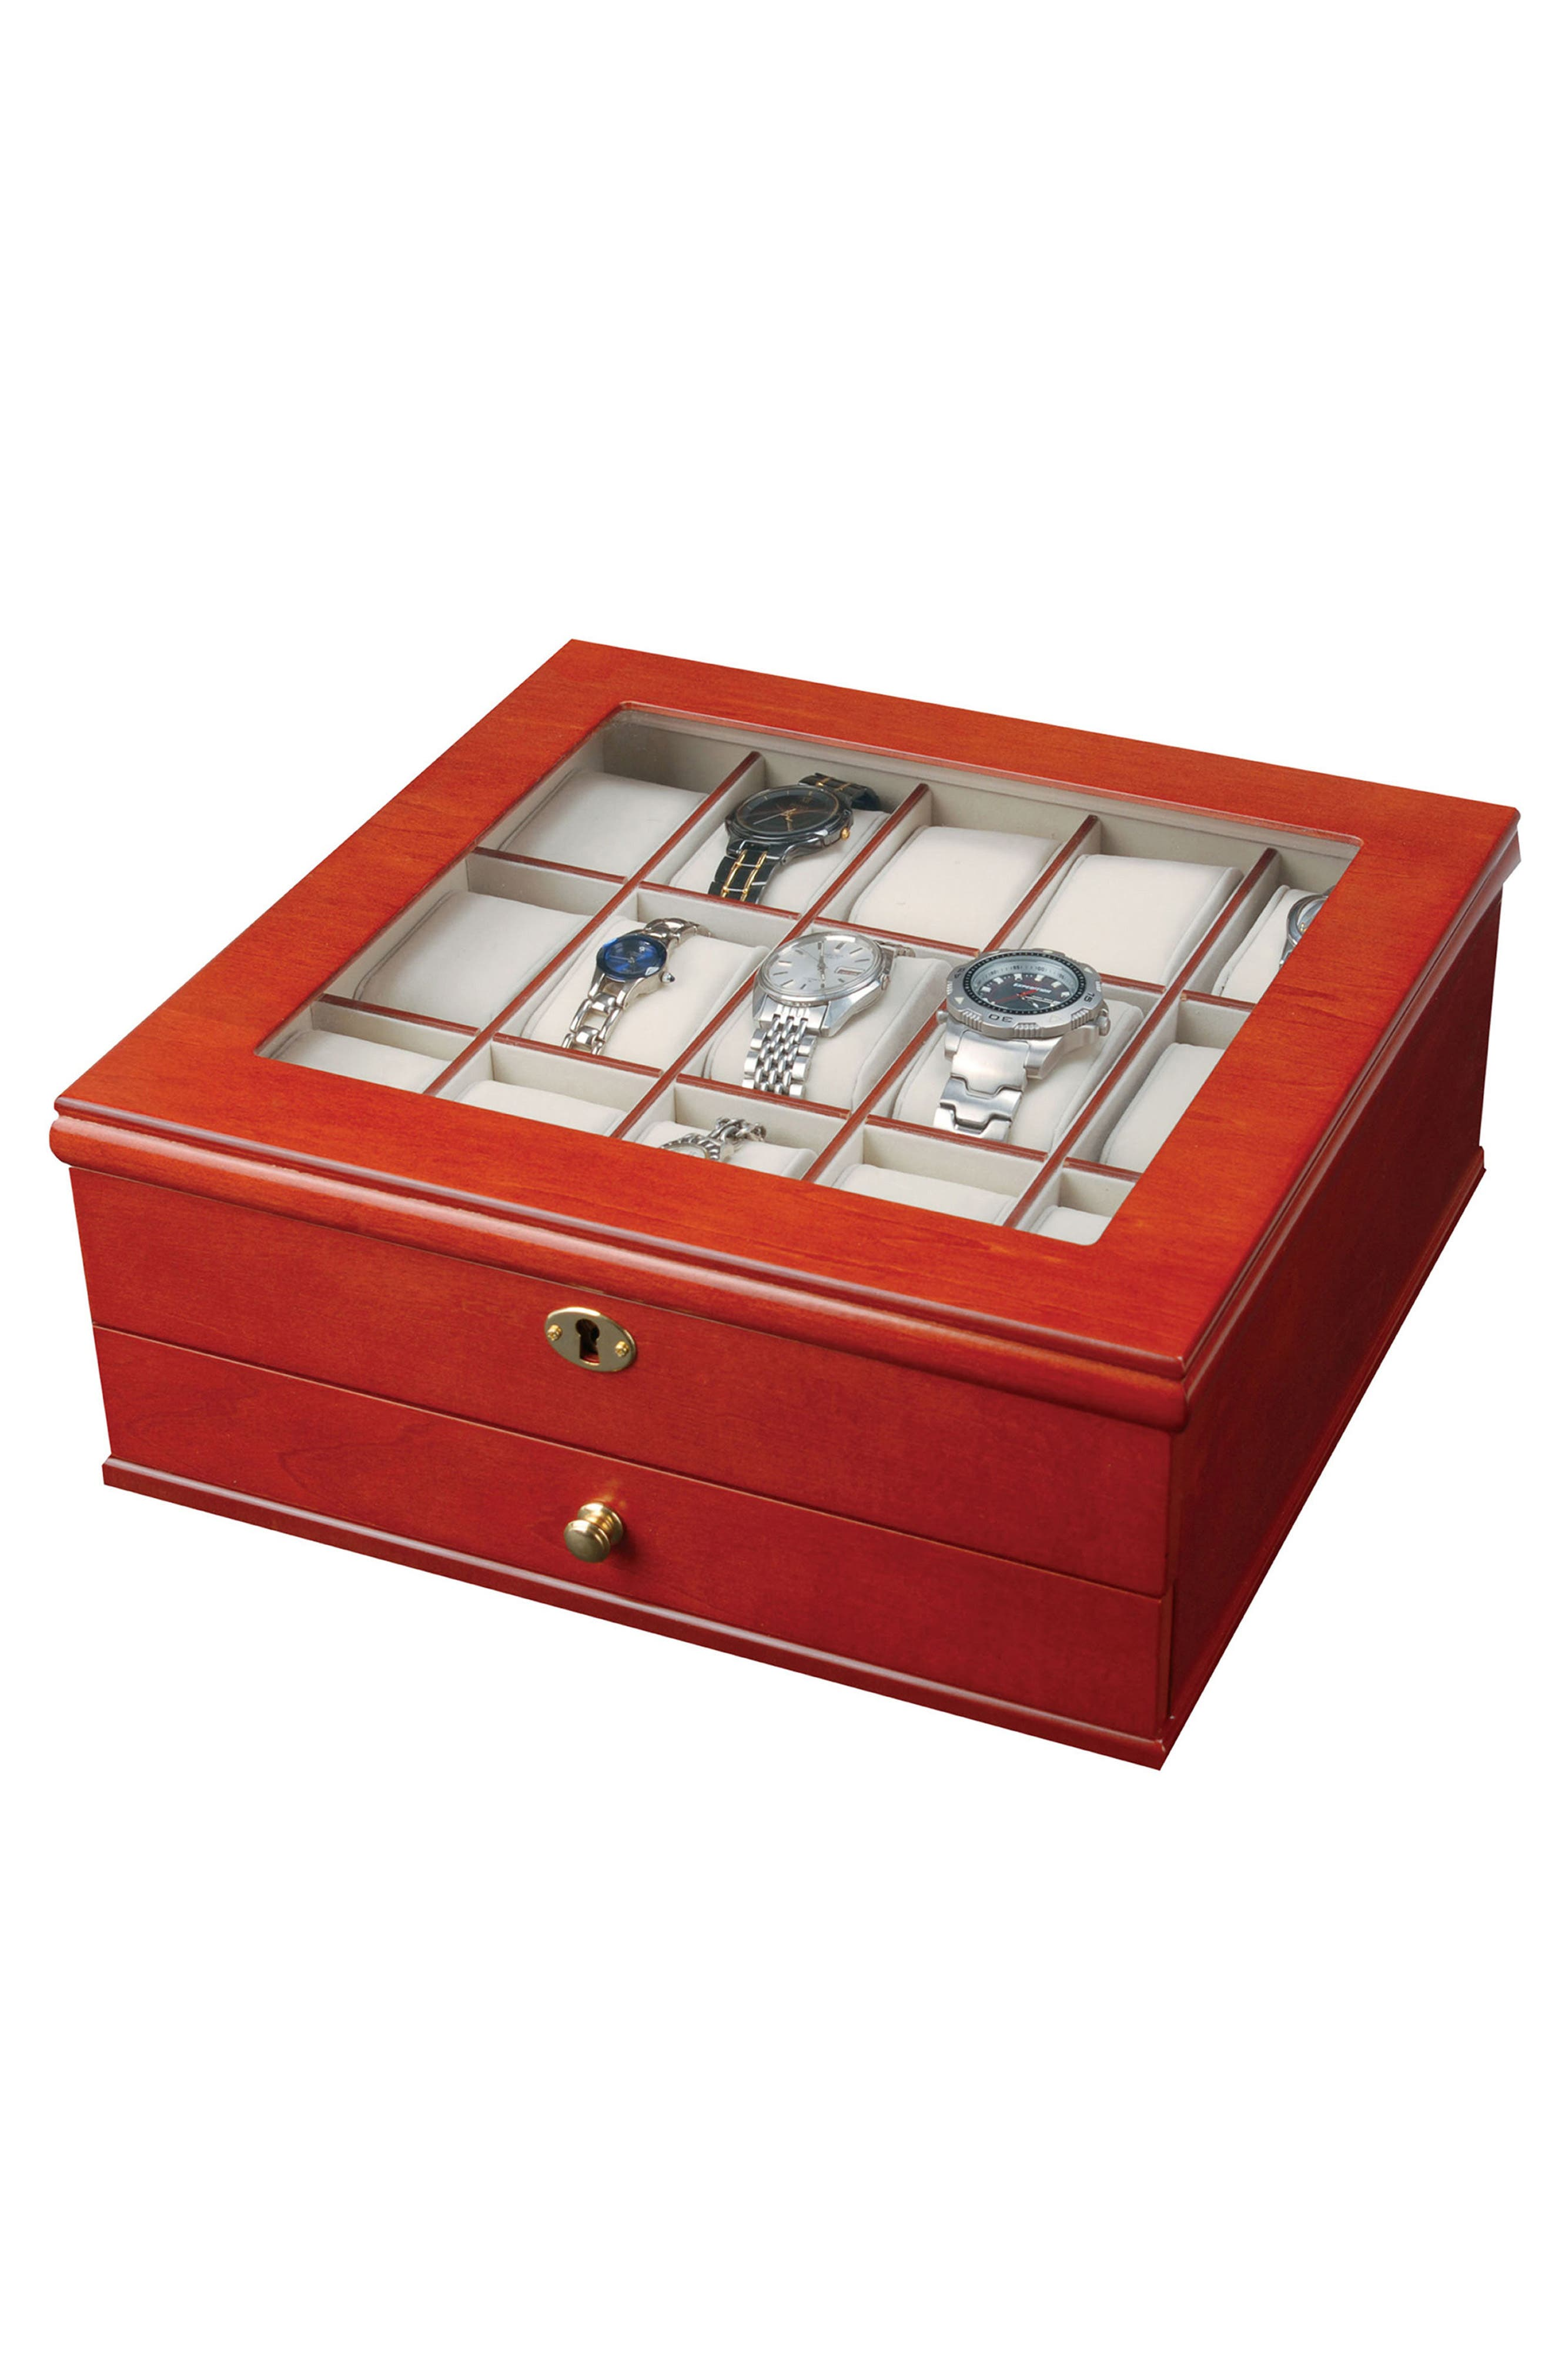 Main Image - Mele & Co. Chris Locking Watch & Jewelry Box